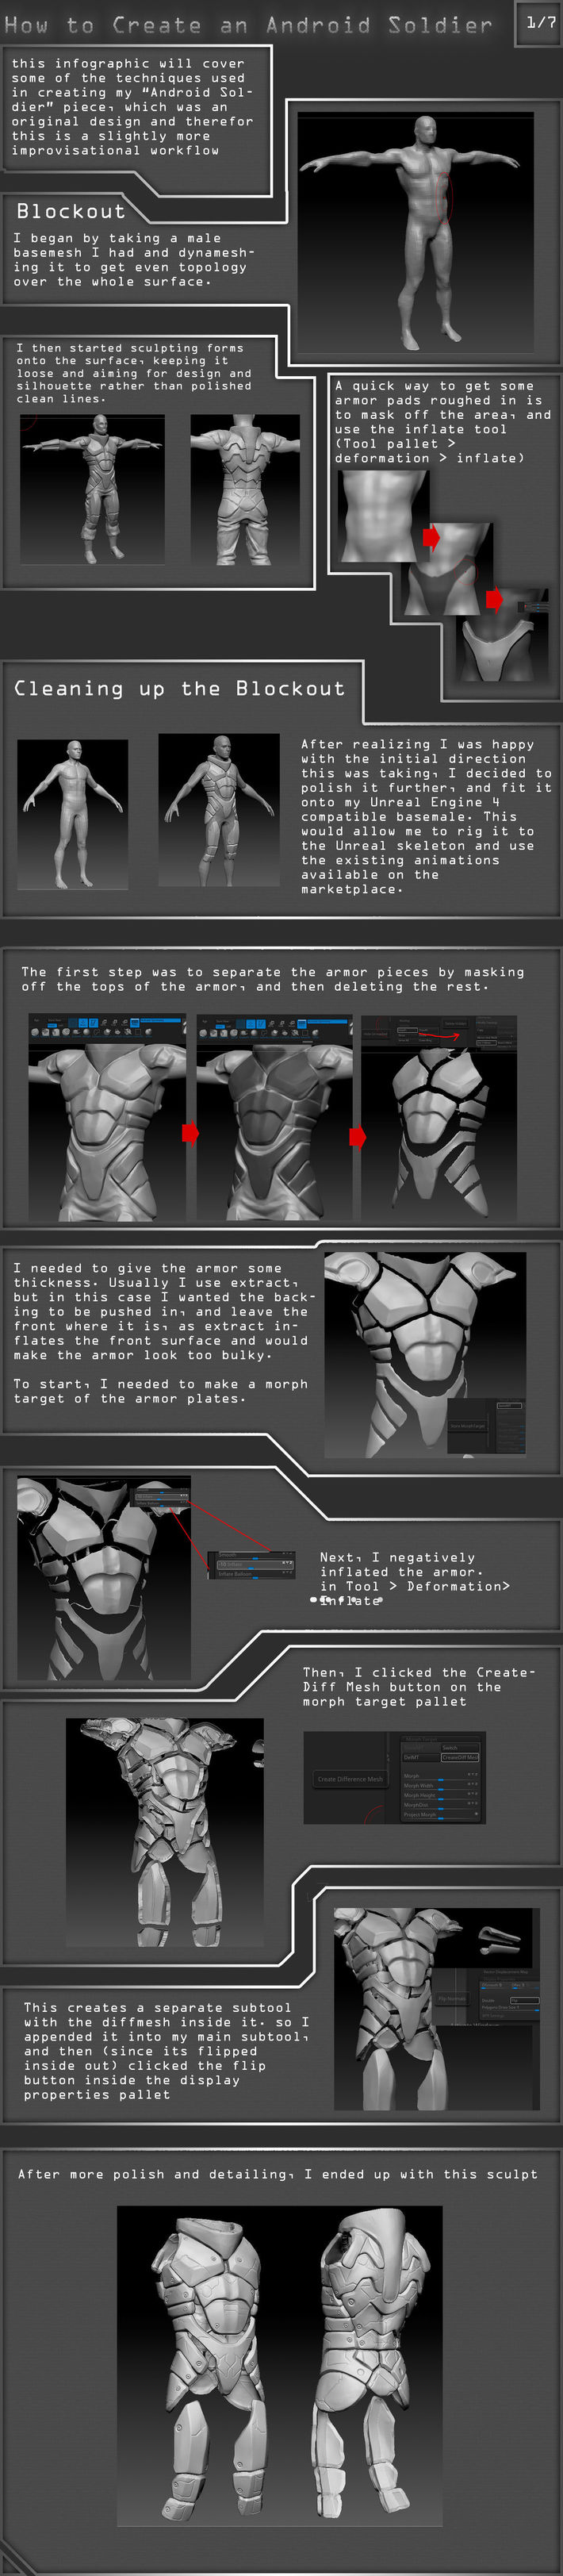 How to Create an Android Soldier | CGTrader